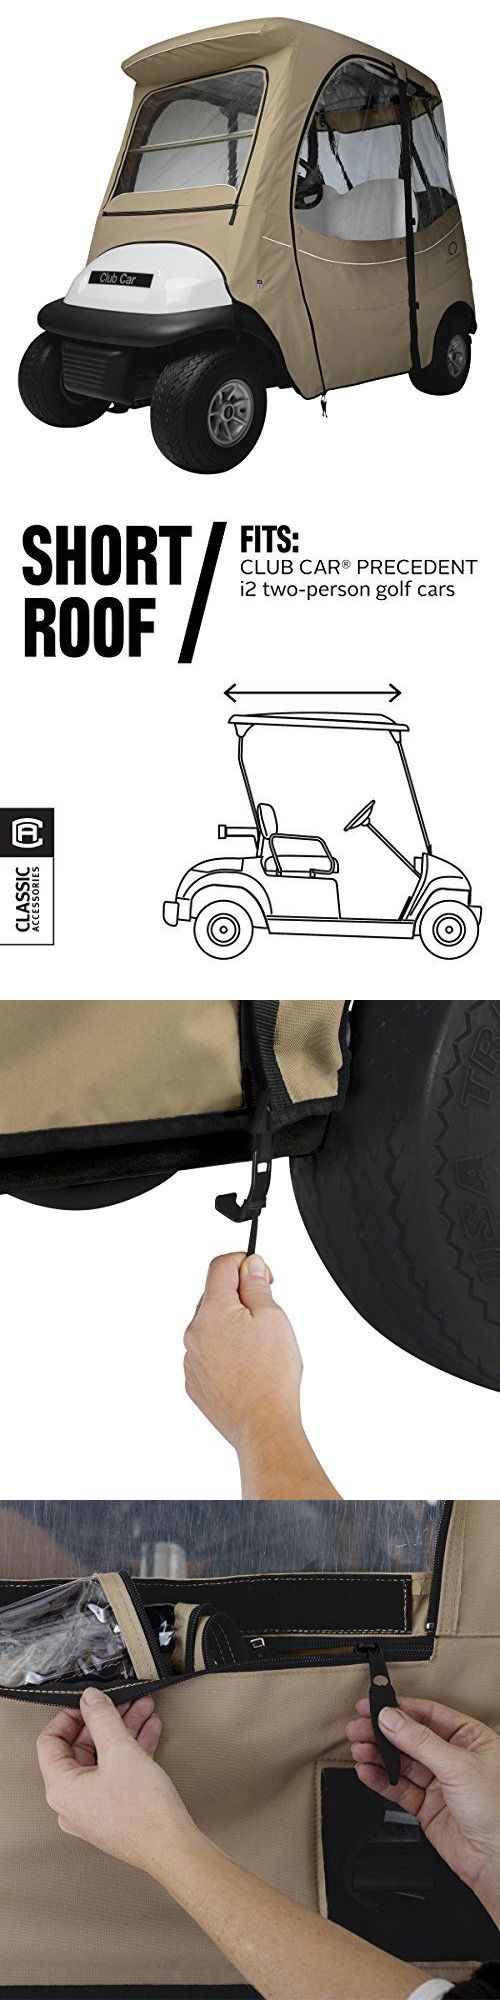 Push-Pull Golf Cart Add-ons 72671: Classic Accessories Fairway Golf Cart Fadesafe Enclosure For Club Car, Short Roo -> BUY IT NOW ONLY: $203.29 on eBay!